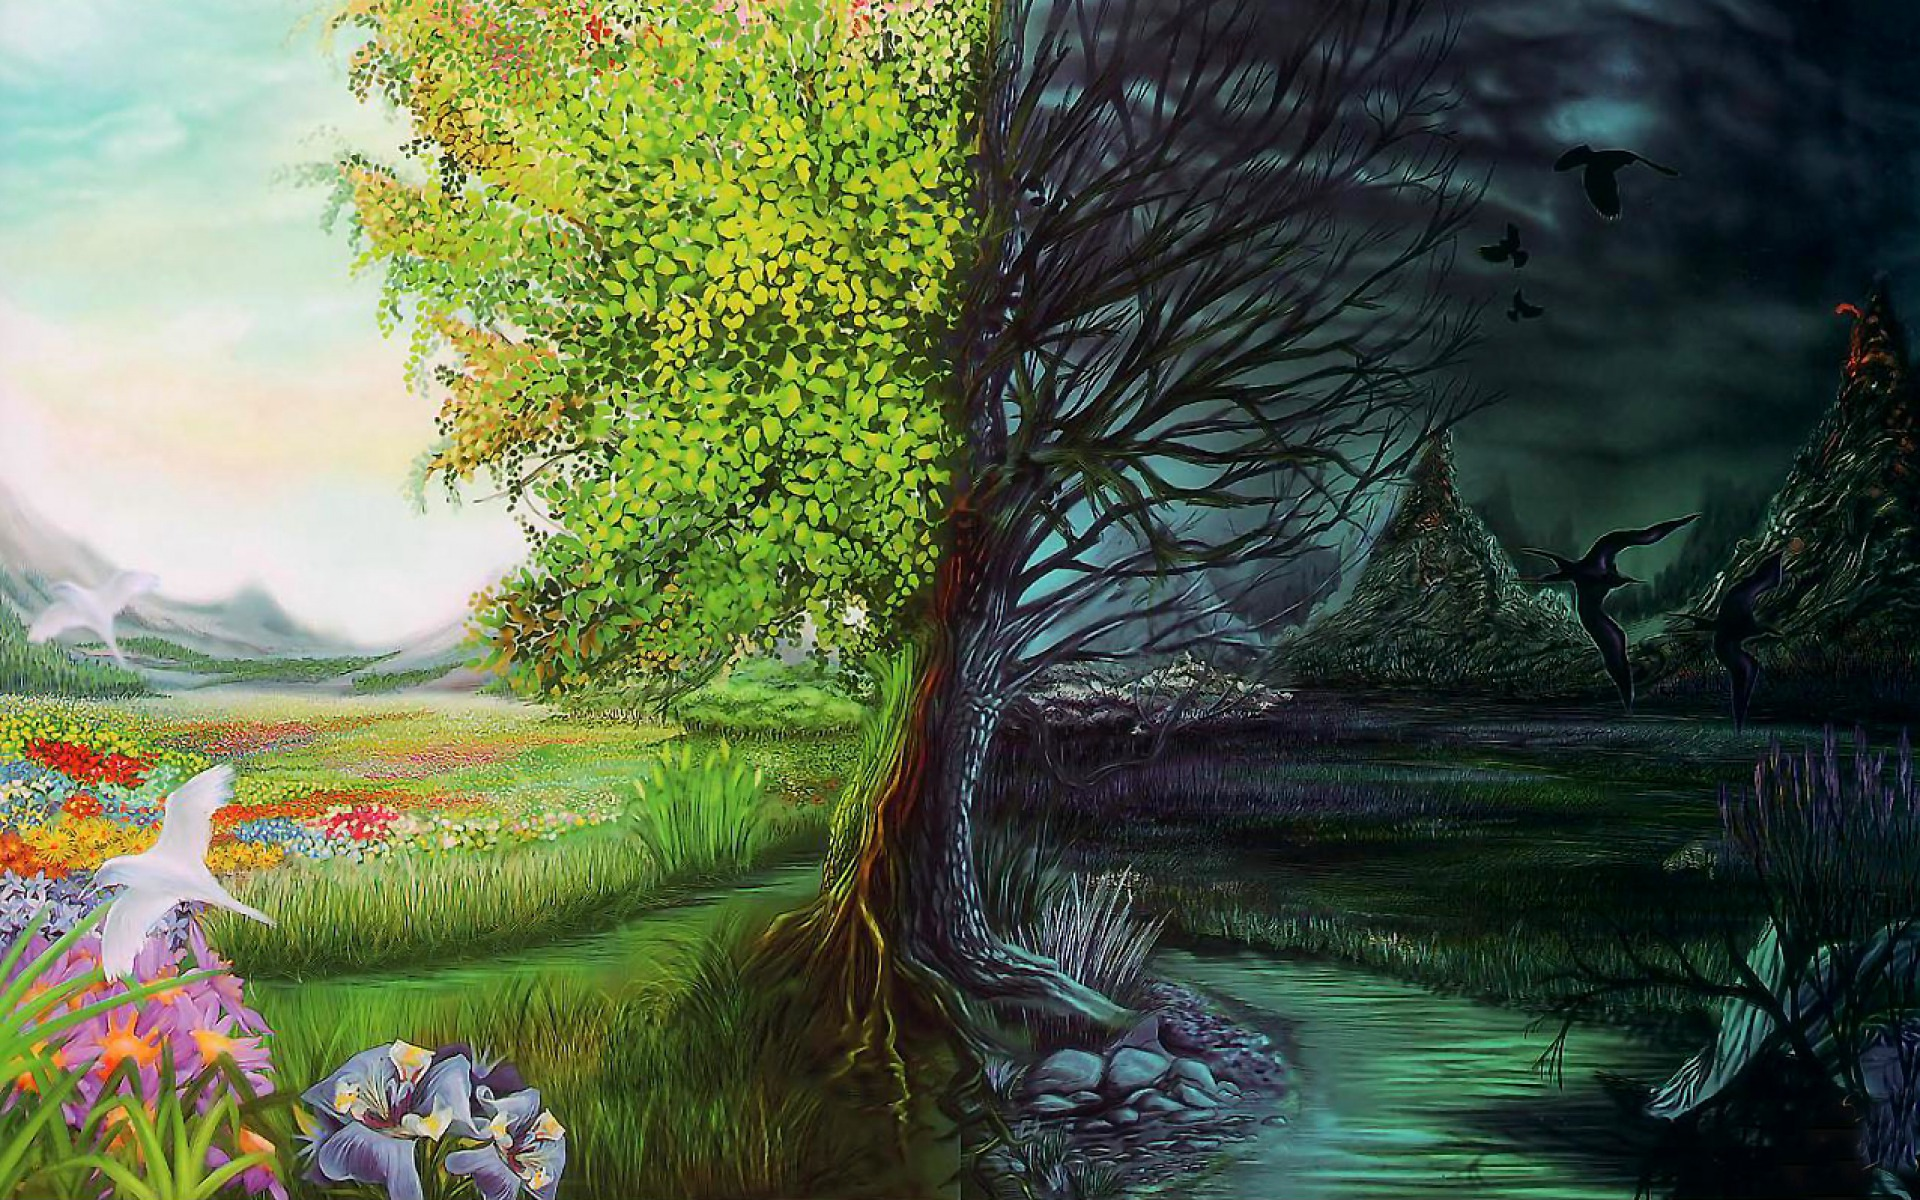 3d Animated Wallpapers For Mobile Free Download The Two Sides Of Nature Wallpapers The Two Sides Of